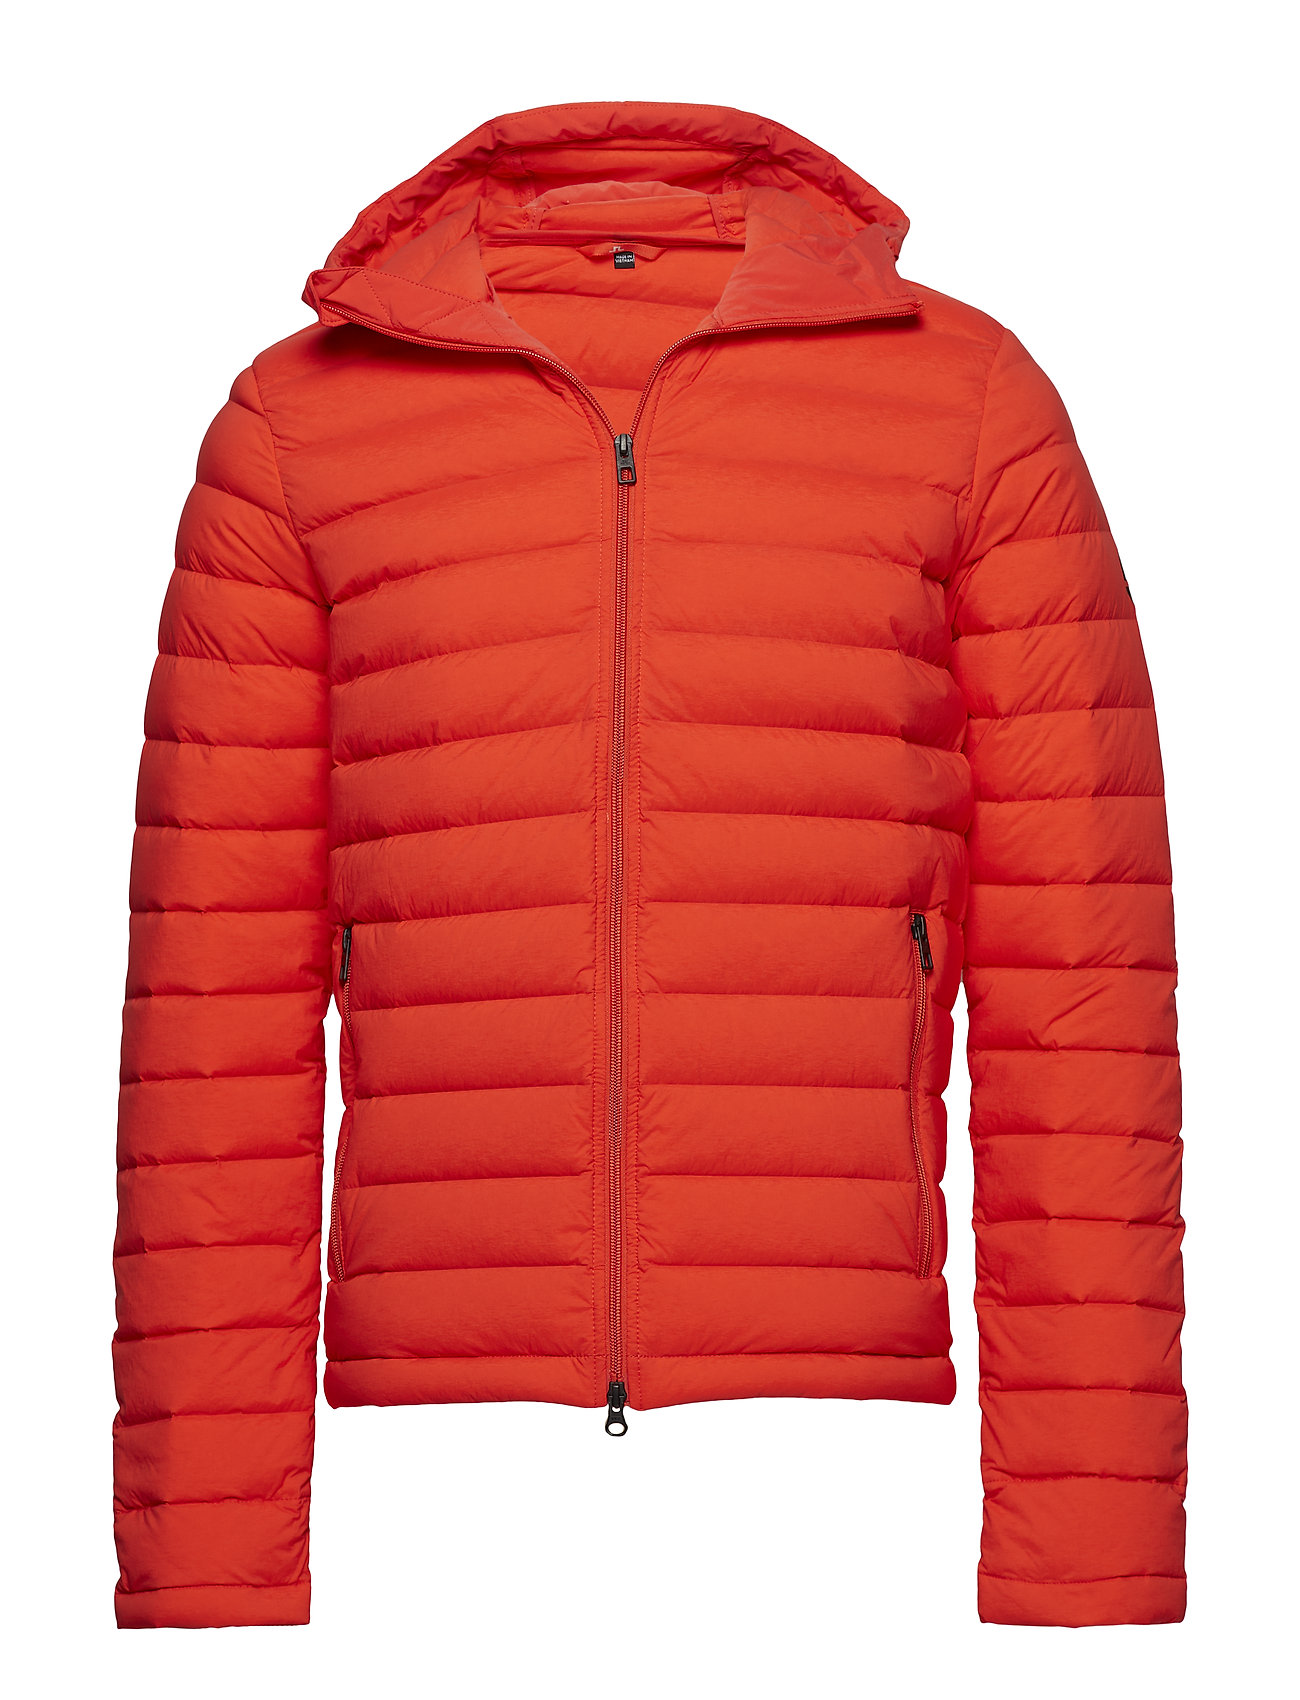 J. Lindeberg Ski M Ease Hooded Liner JL Down